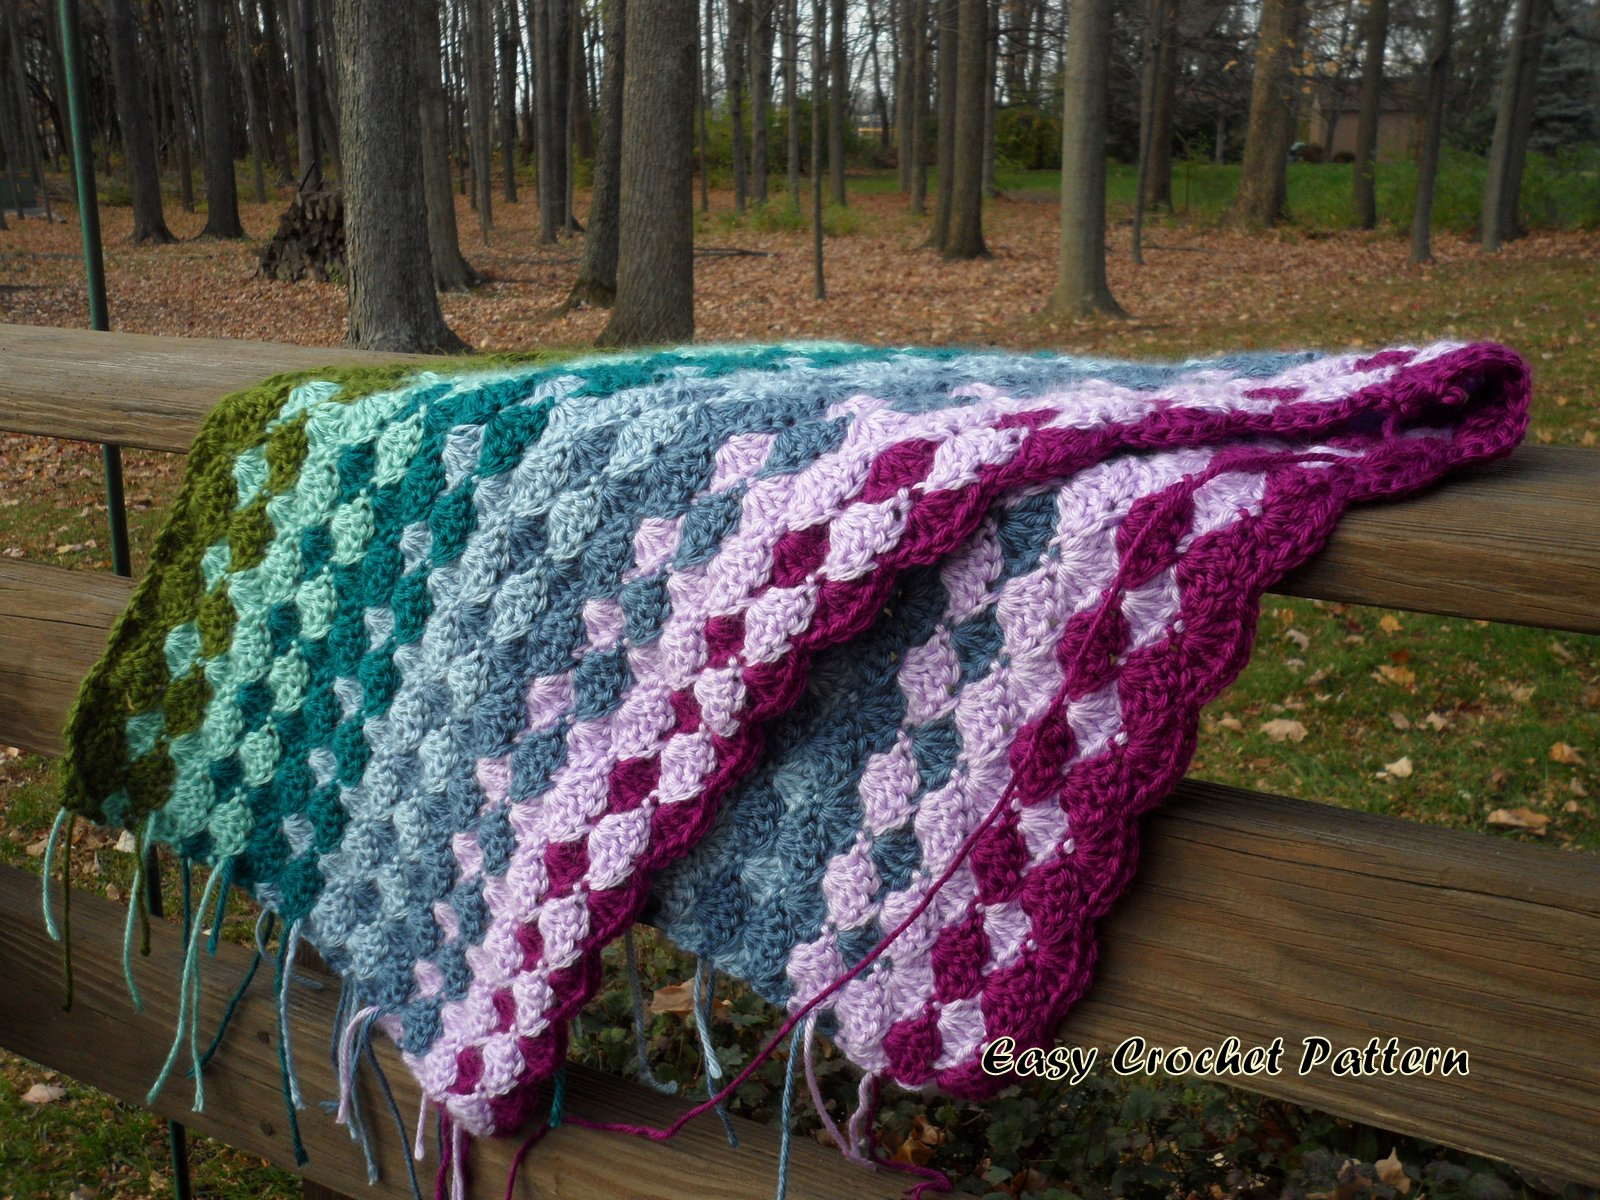 Easy Crochet Afghan Patterns : Easy Crochet Pattern: Shell Afghan: A New Project Started